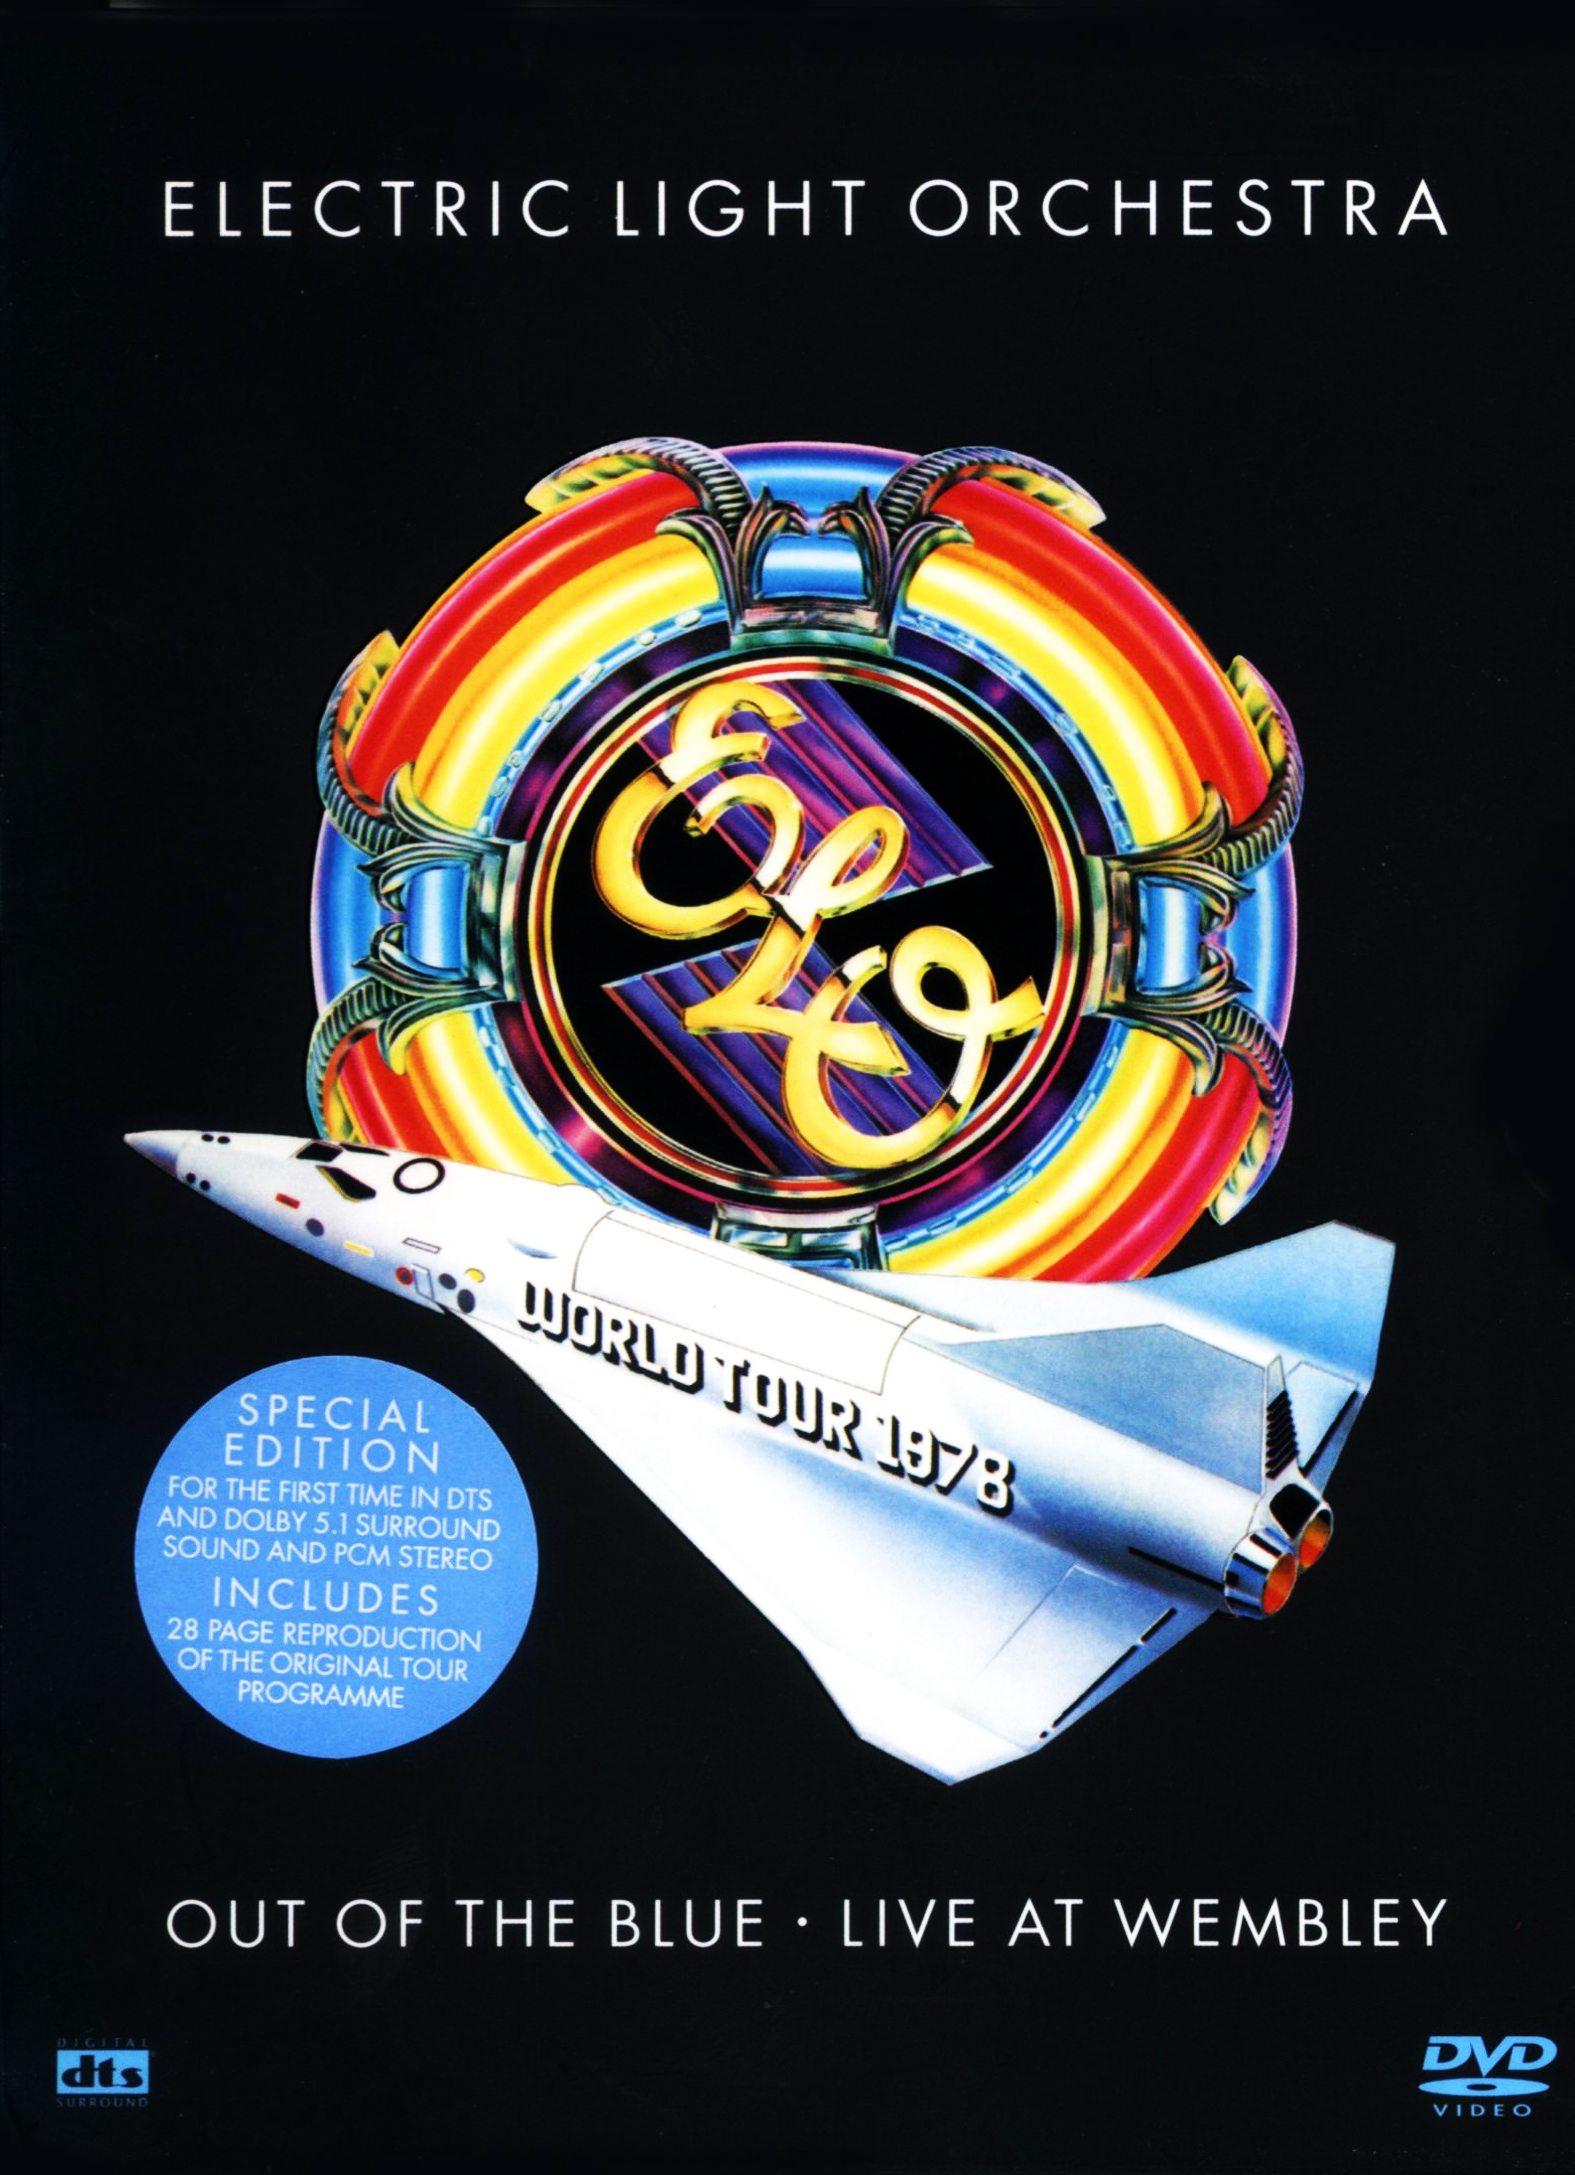 Electric Light Orchestra - Out Of The Blue (30th Anniversary Edition)